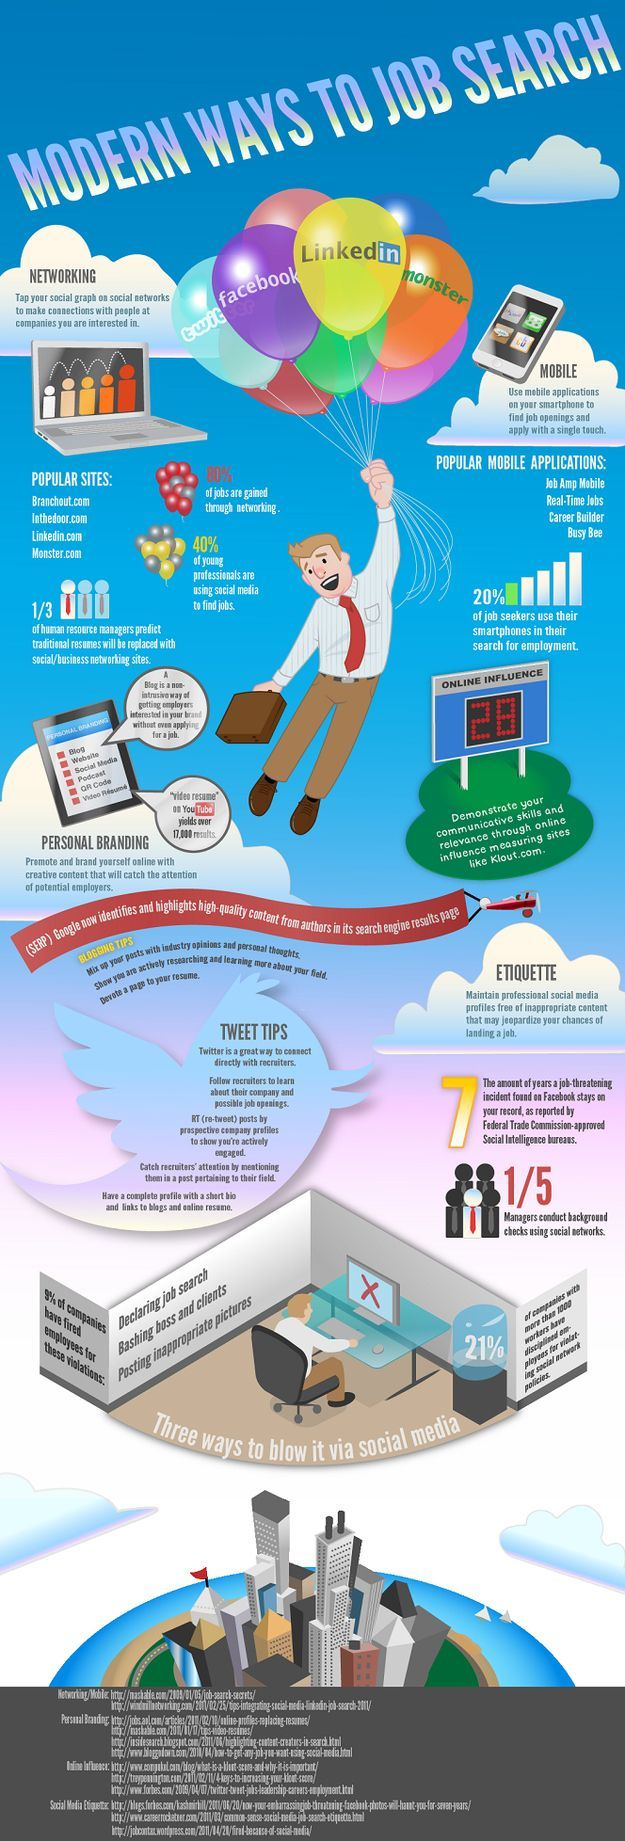 Modern Ways to Job Search Infographic 112